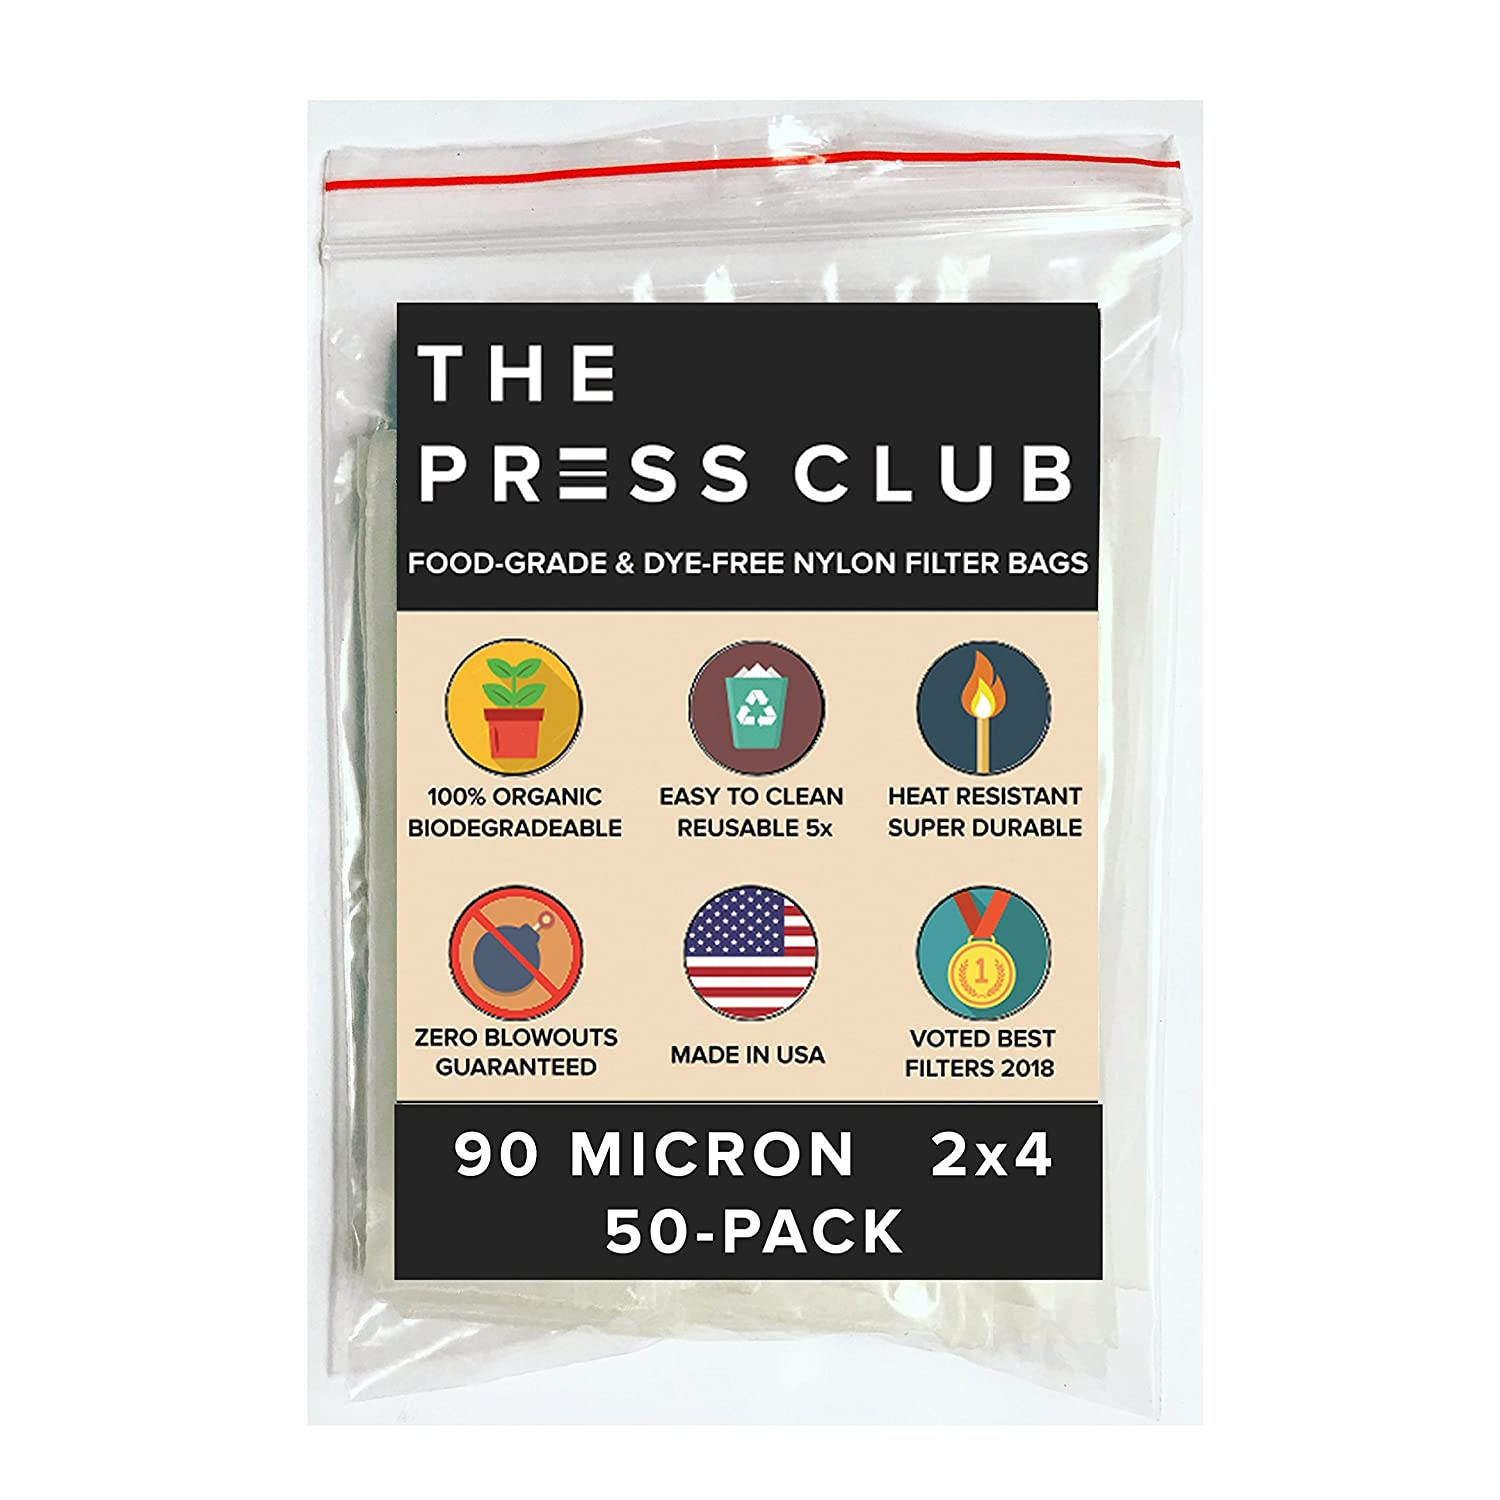 25 Micron | Premium Nylon Tea Filter Press Screen Bags | 2 x 4 | 50 Pack | Zero Blowout Guarantee | All Micron & Sizes Available The Press Club